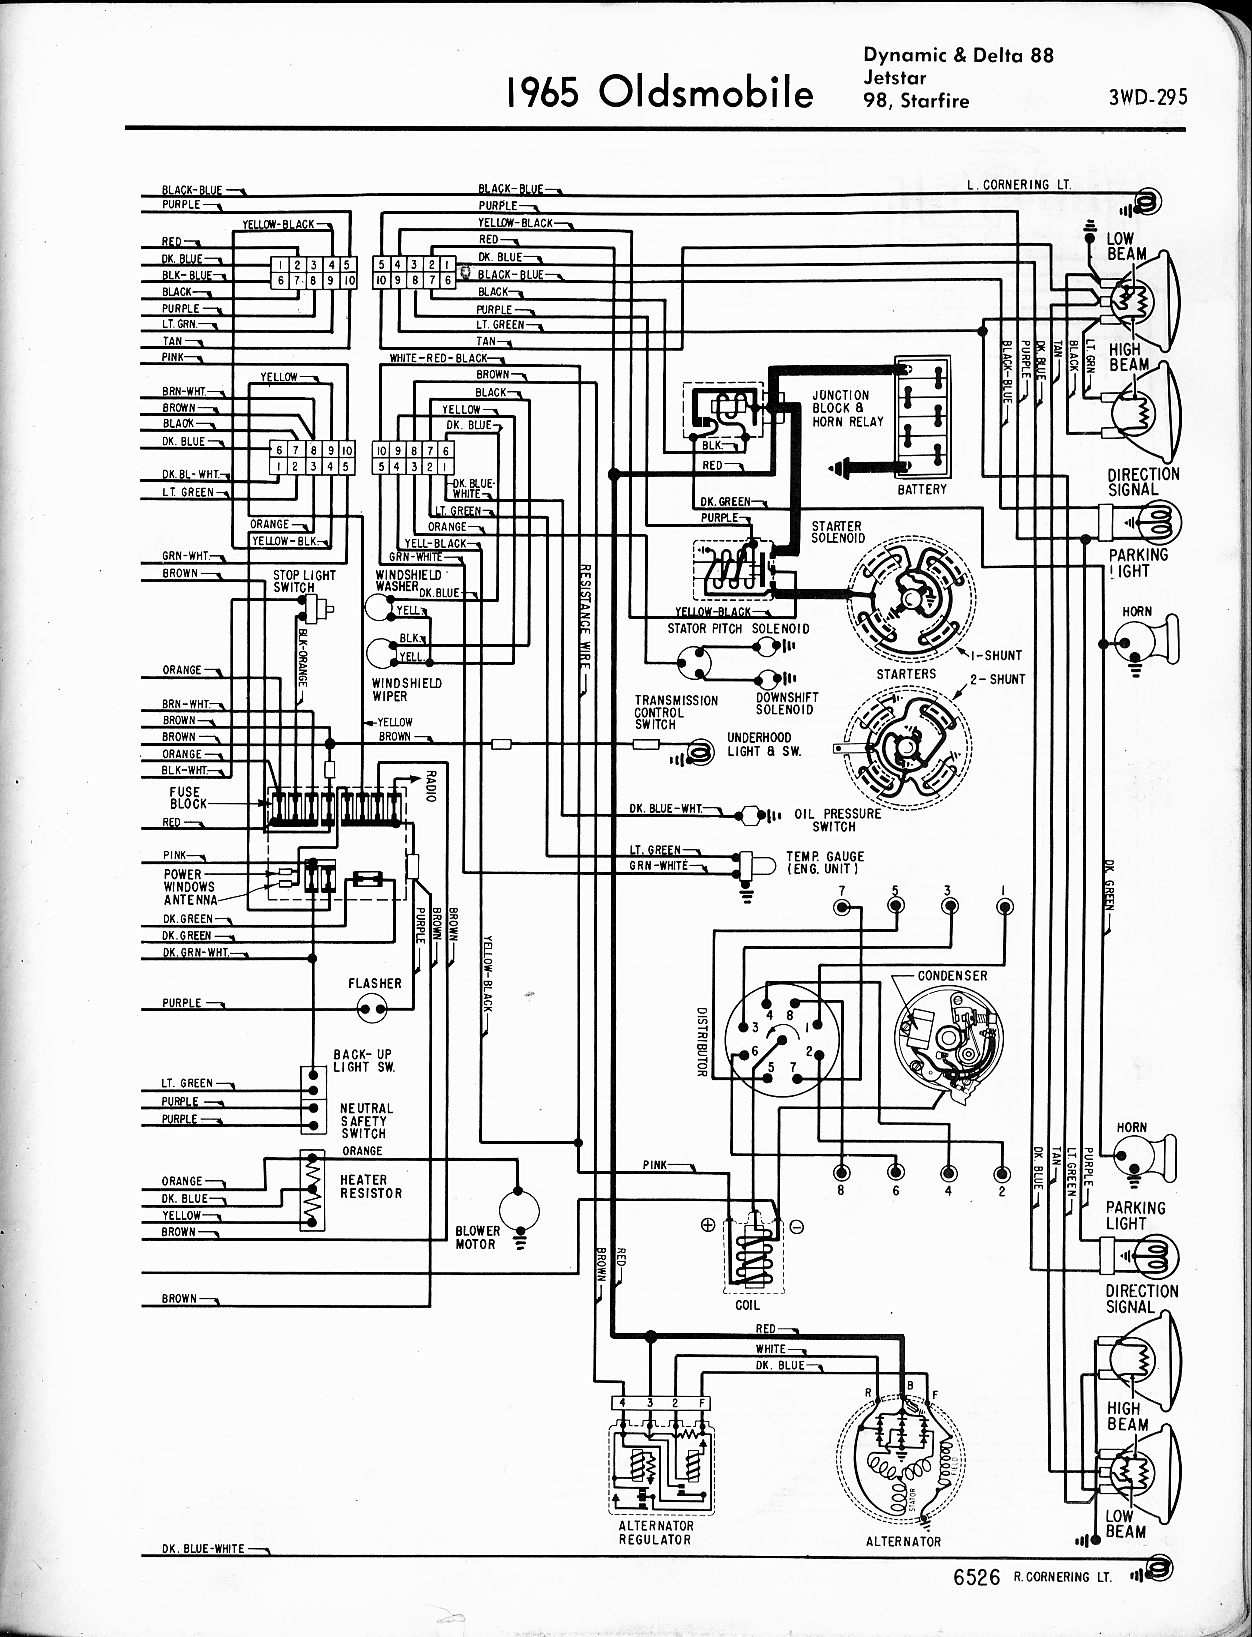 oldsmobile wiring diagrams the old car manual project rh oldcarmanualproject com 2000 Oldsmobile Silhouette Engine Diagram 1949 Oldsmobile Wiring-Diagram